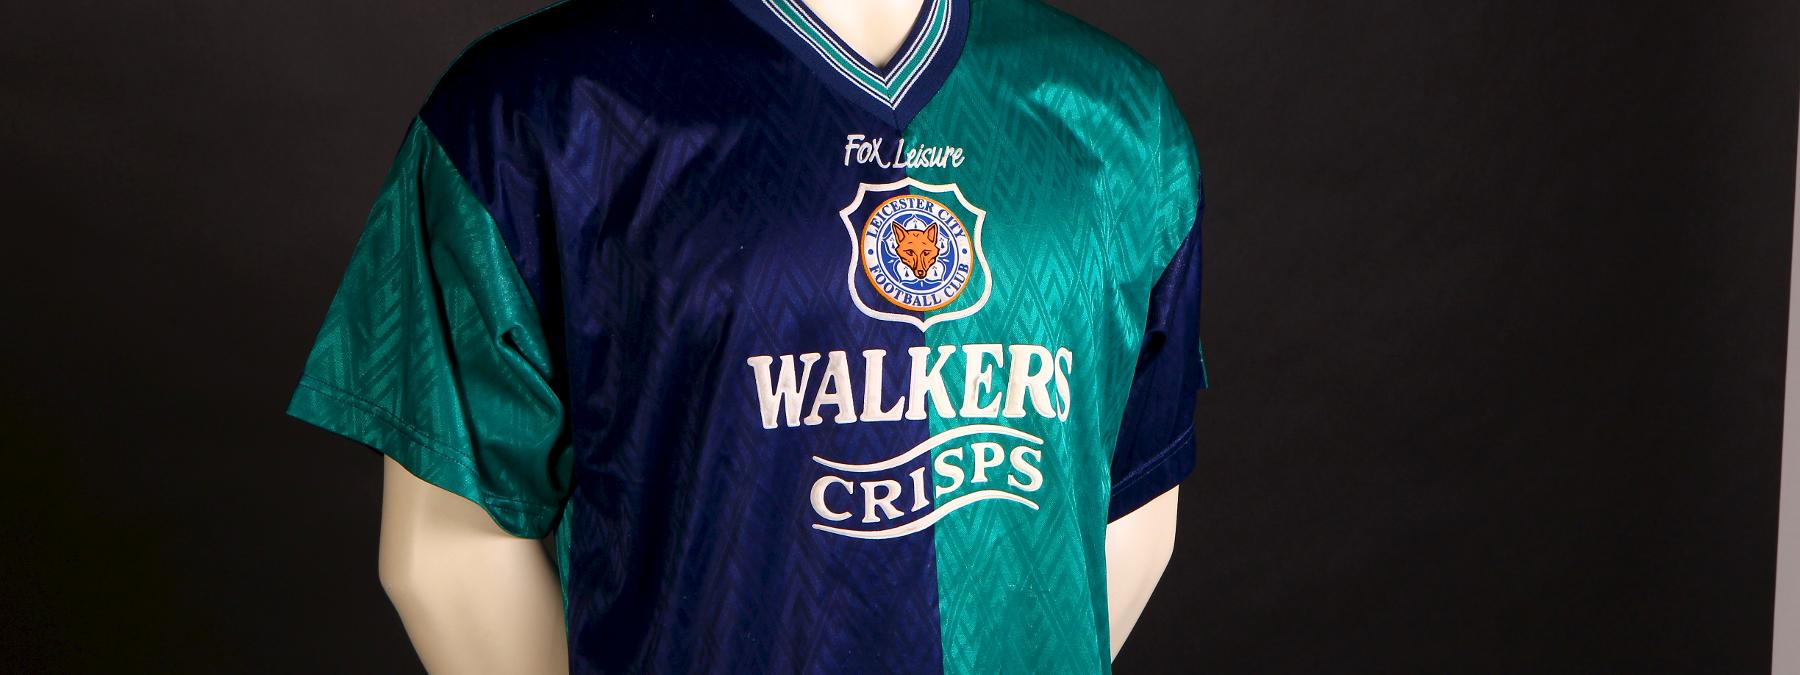 3c6472855 Leicester City Kits Through The Years  Part One